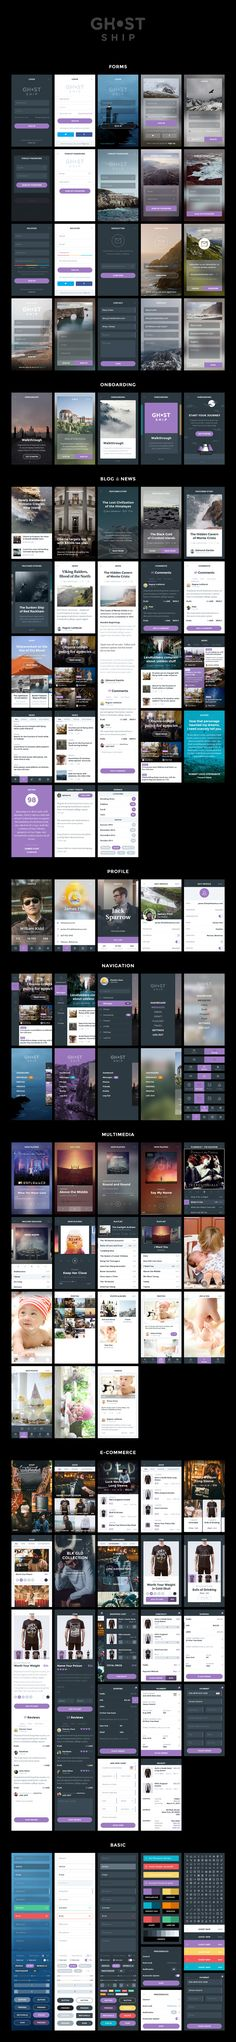 Ghost Ship Mobile UI Kit